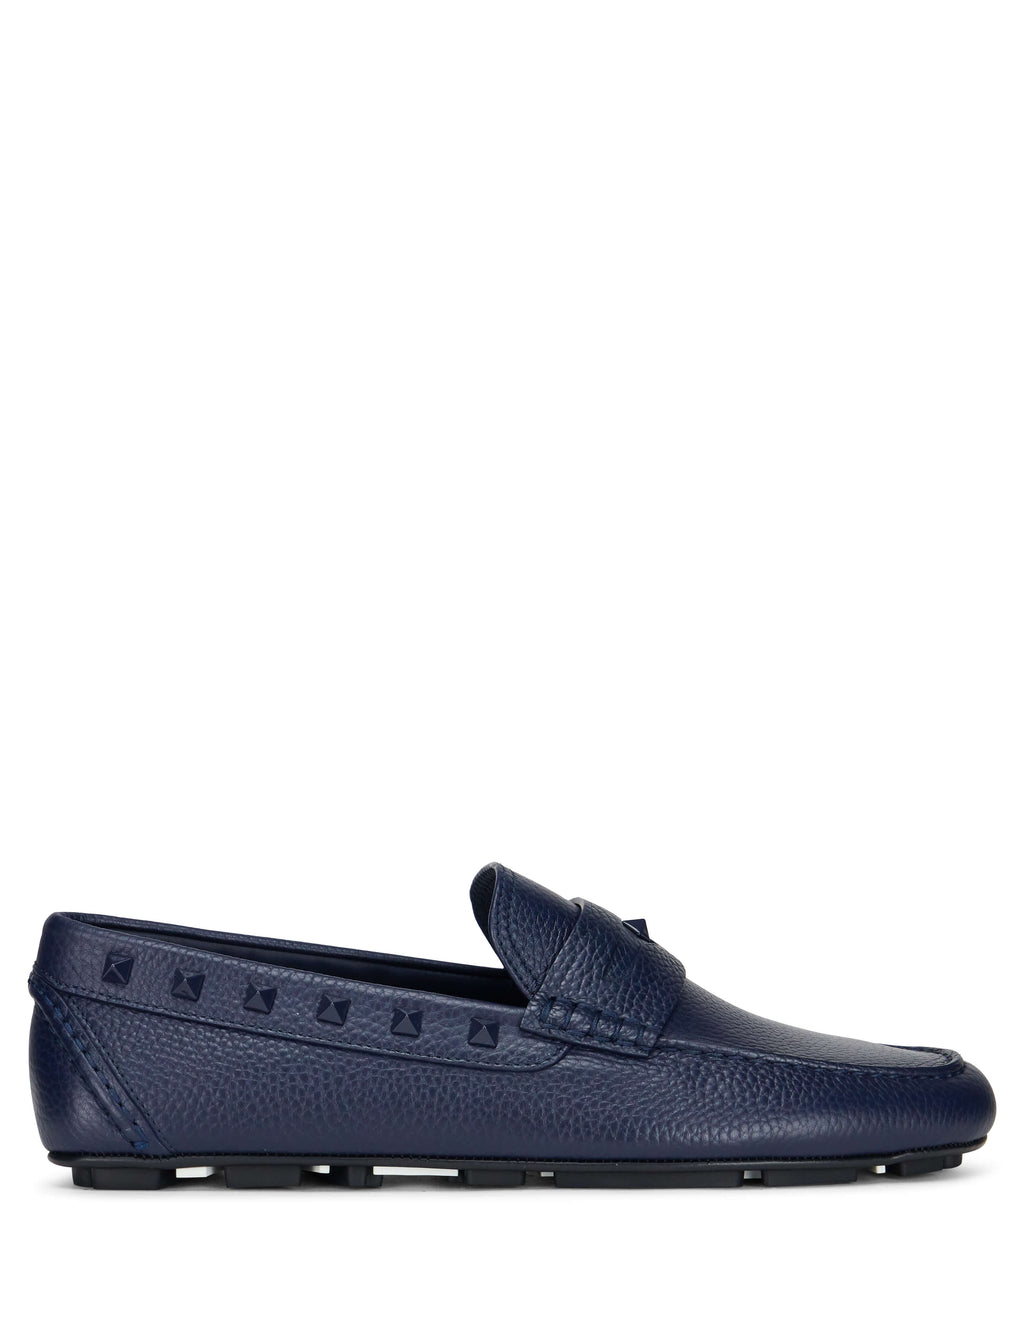 Valentino Men's Giulio Fashion Navy Driving Shoes RY2S0B75WVGM30